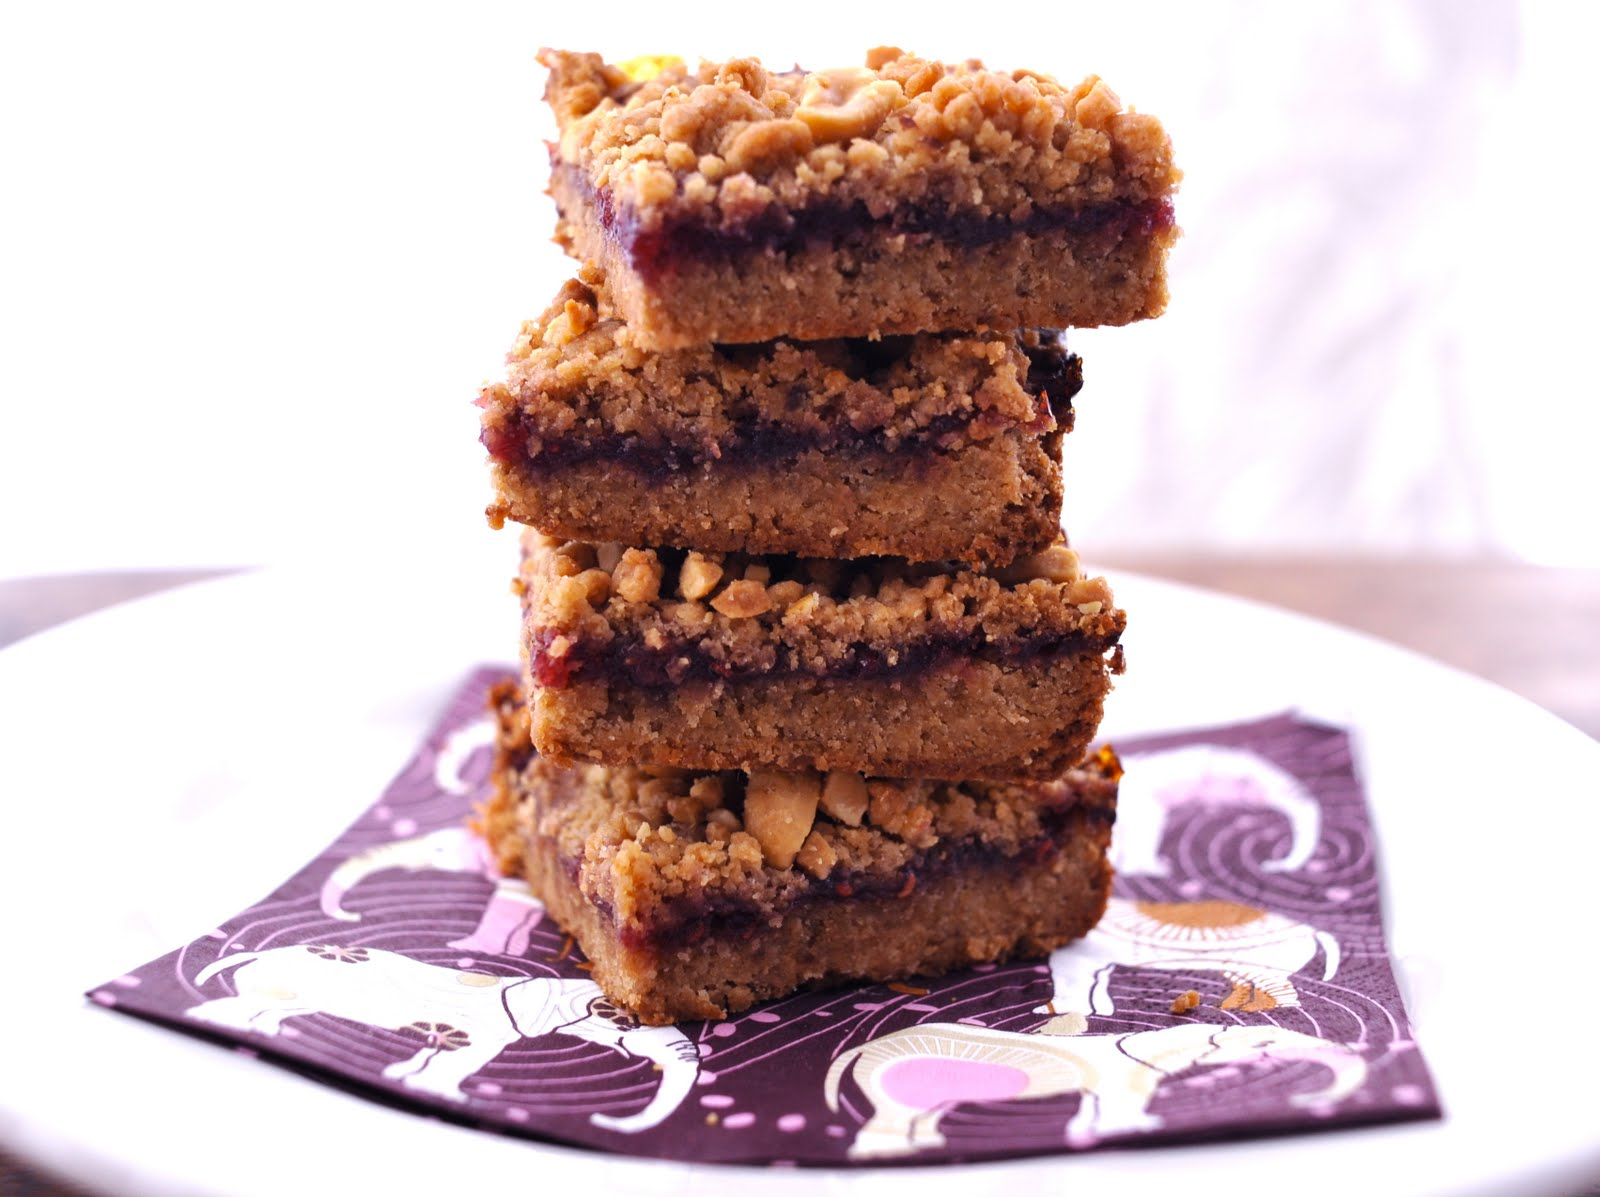 Vegan Good Things: Peanut Butter & Jelly Bars & Some Vegan ...